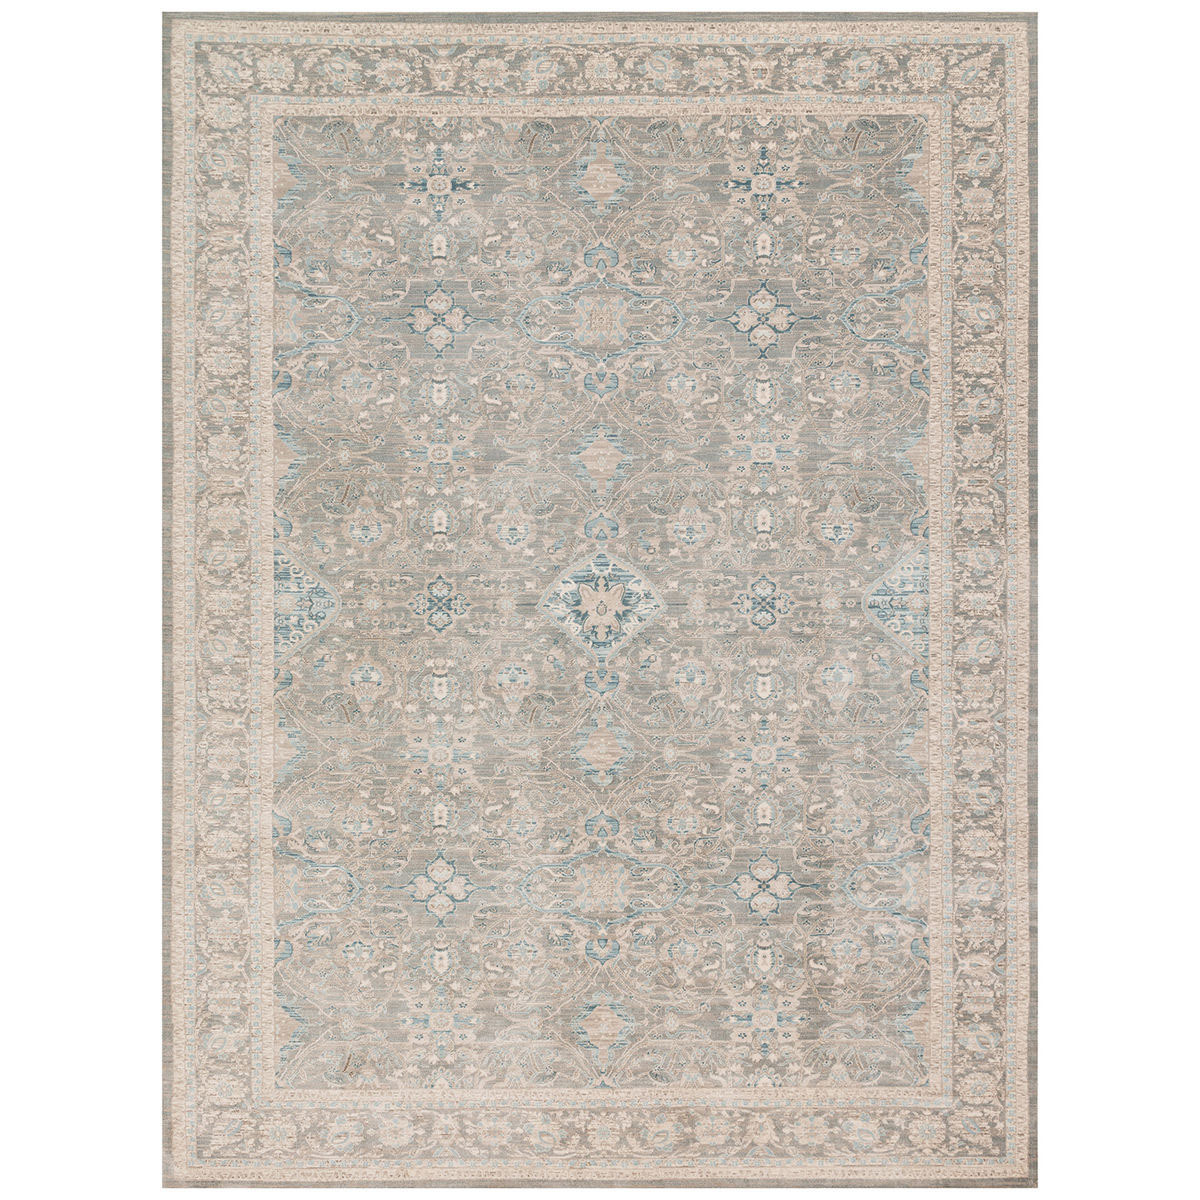 Farmhouse-inspired area rug with neutral ivory and gray combination accented by subtle shades of blue. photo